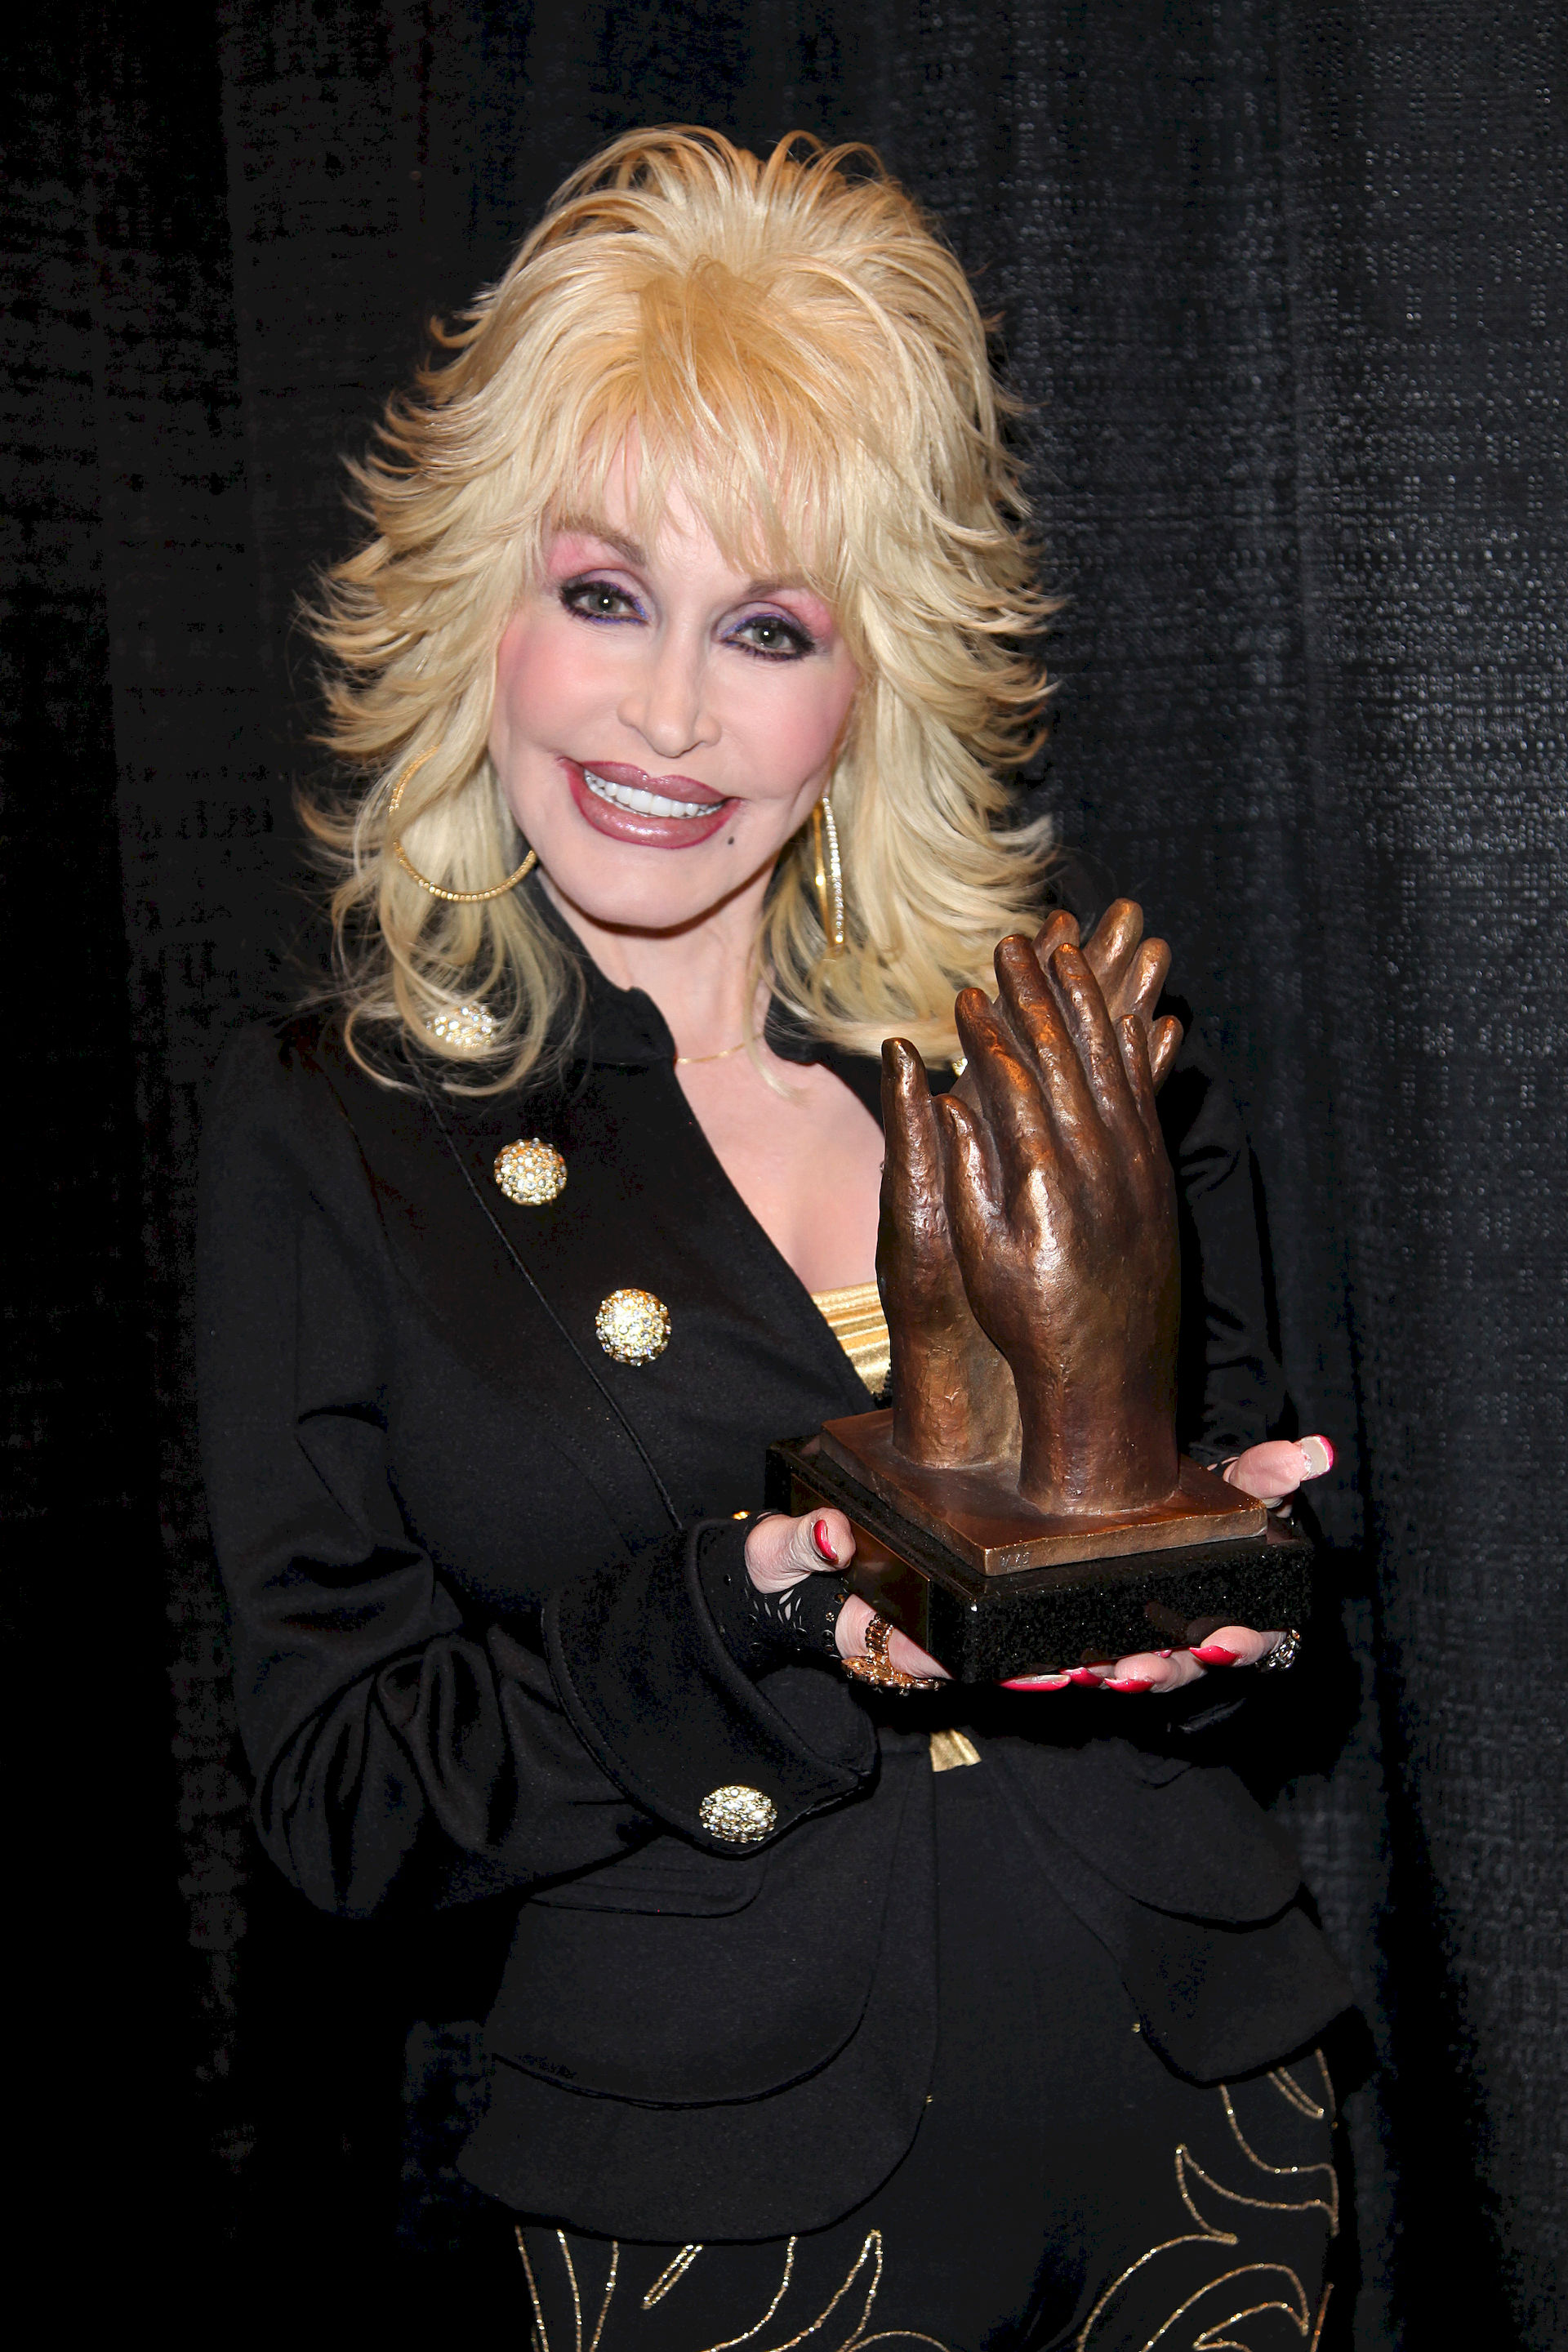 Photo of Dolly Parton: American singer-songwriter and actress